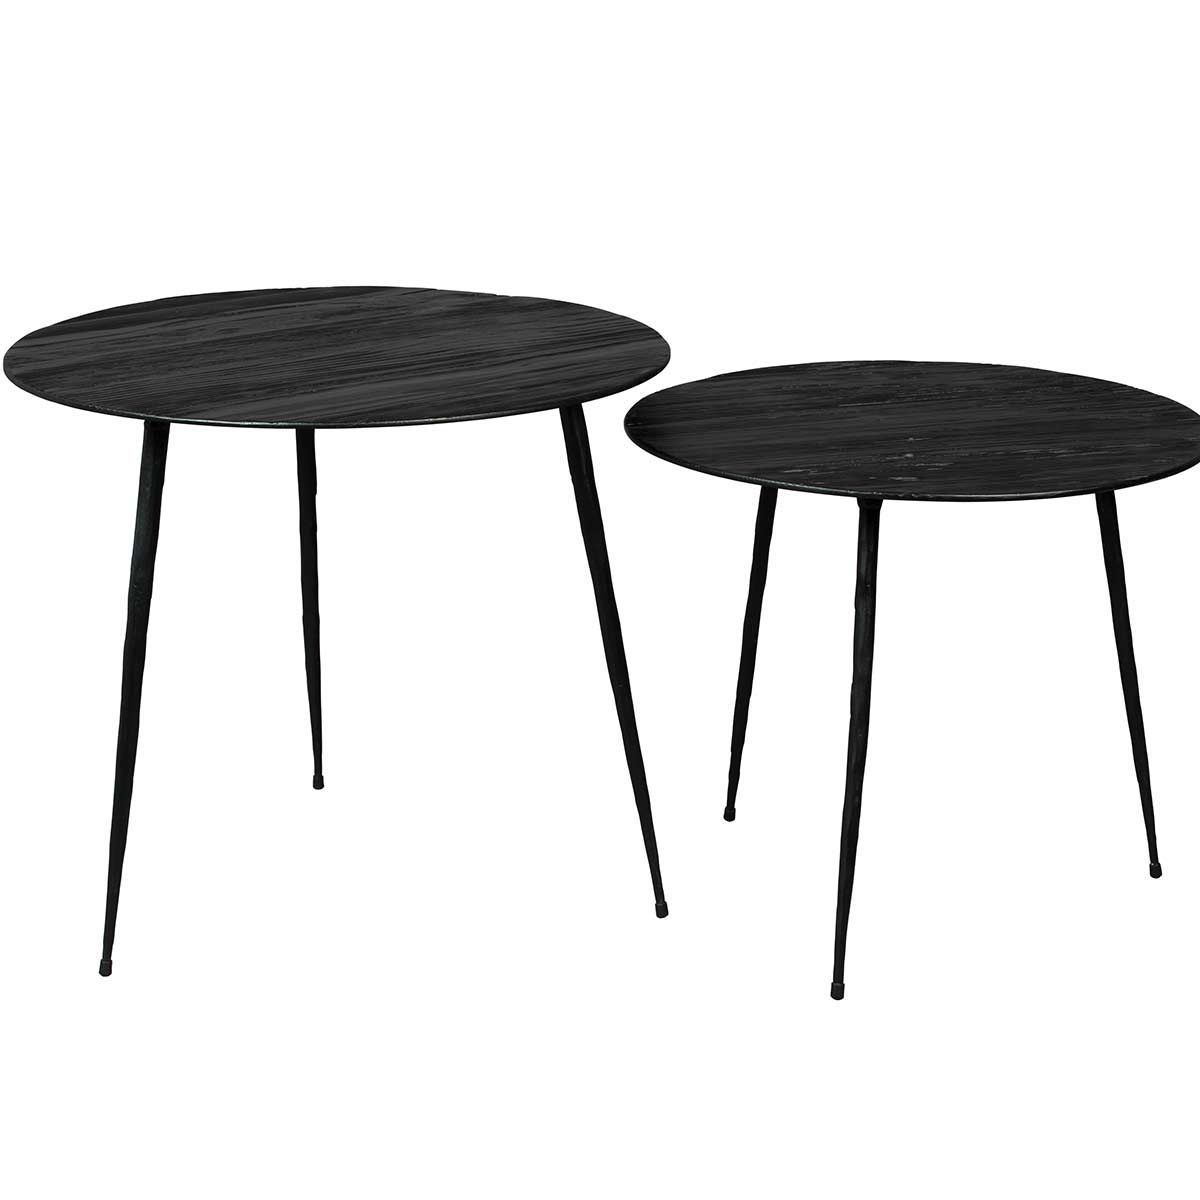 Table basse ronde tripod en acier plaqué pin noir Pepper Dutchbone